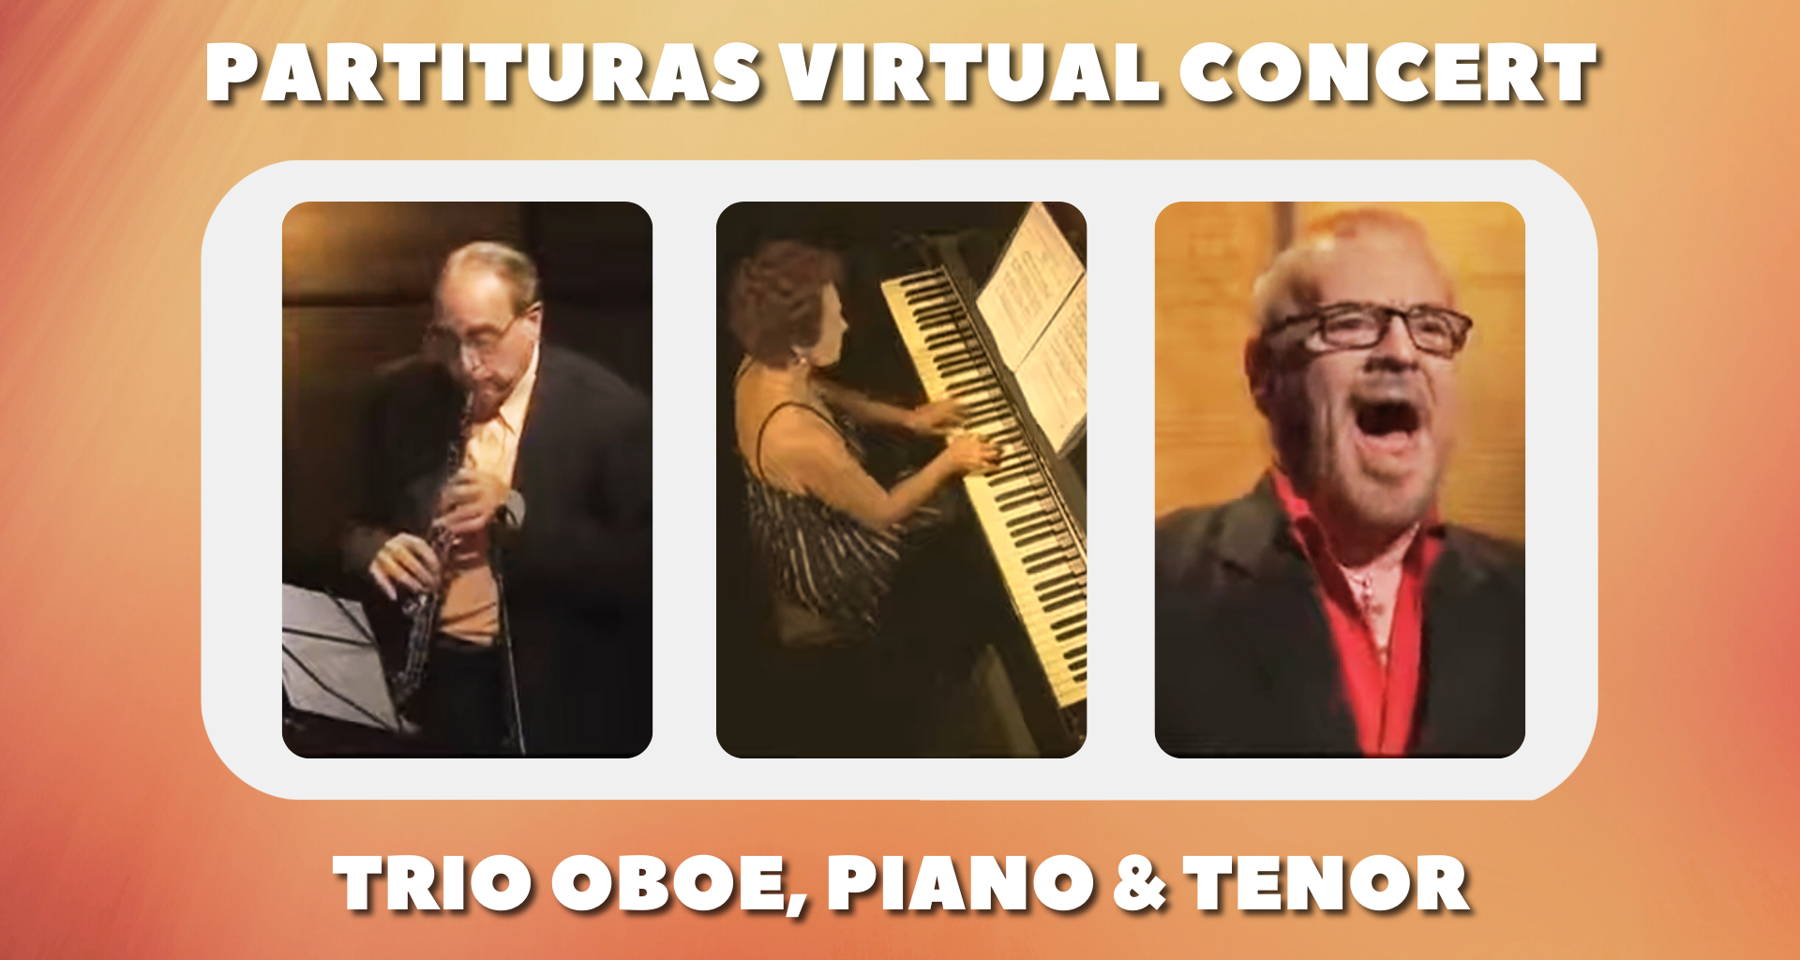 A virtual musical voyage featuring a tenor, oboist and pianist